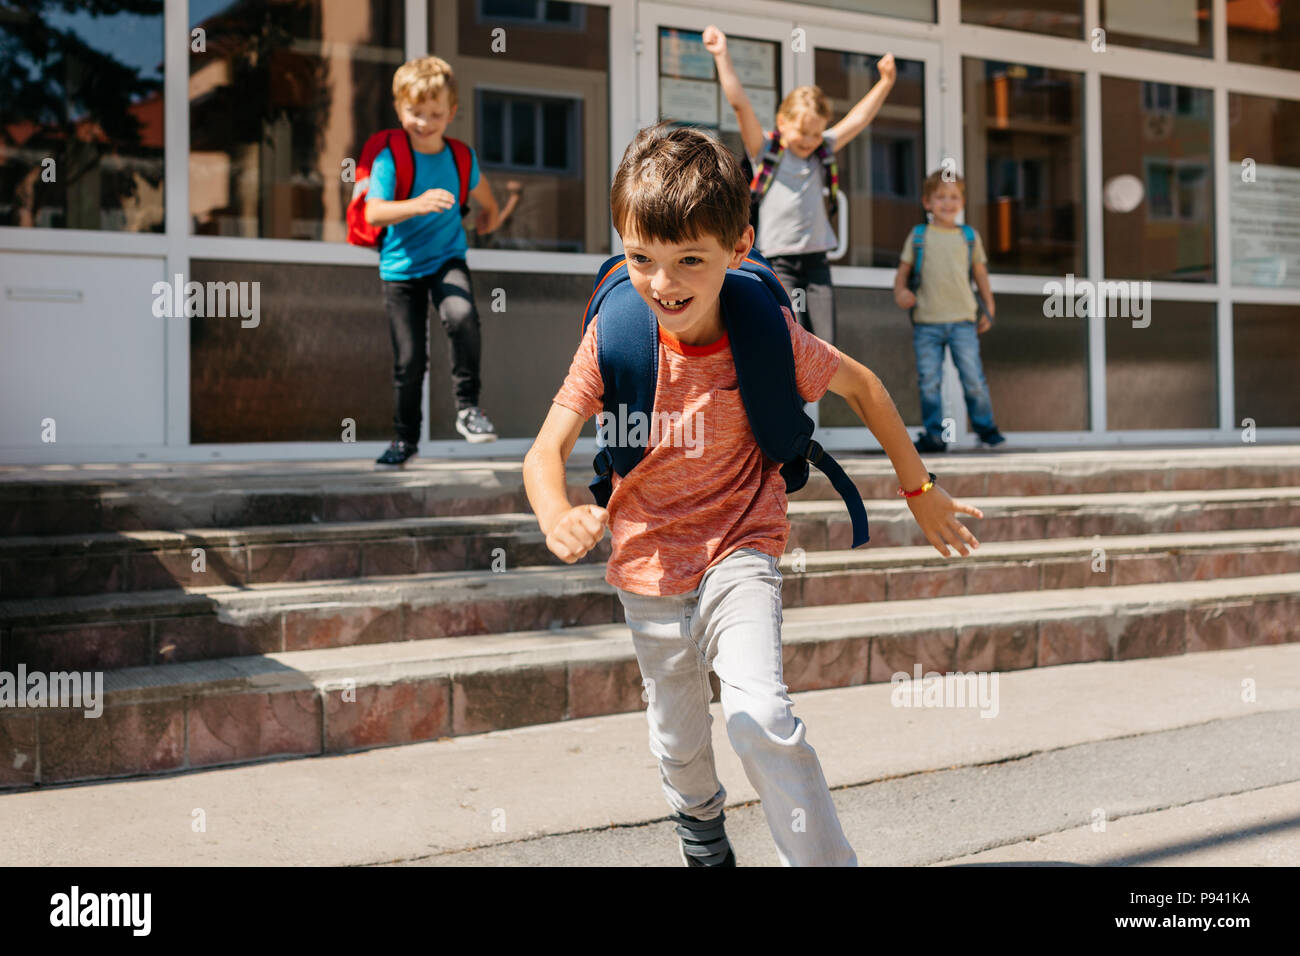 Happy children running away from school. Last day of school - portrait of a cheerful child running away from school. - Stock Image